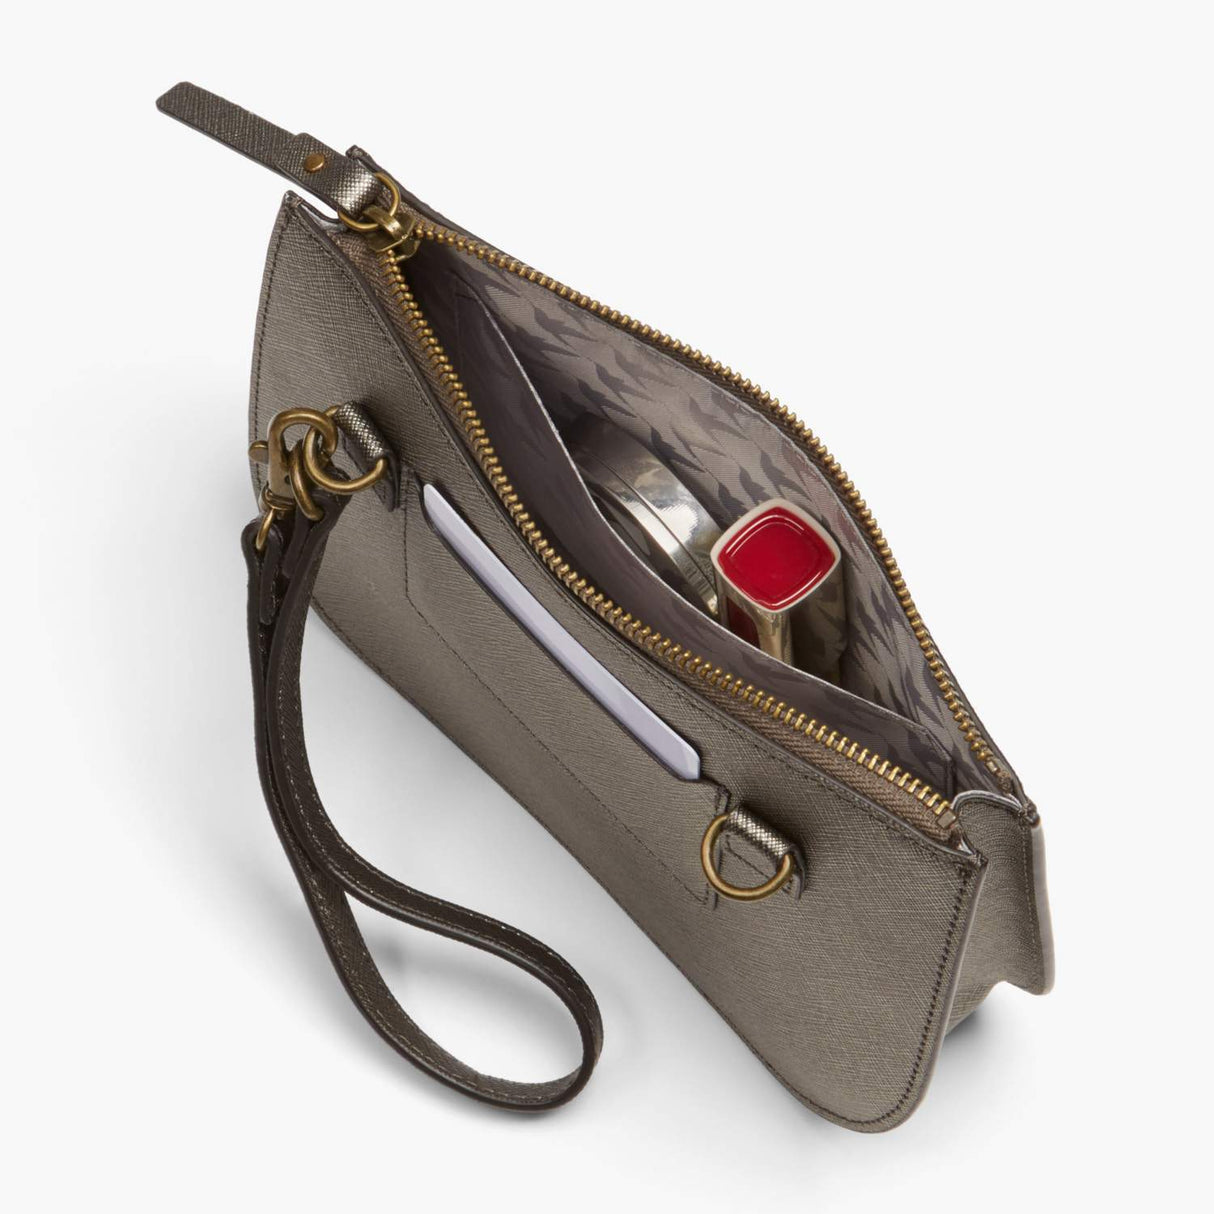 Interior Pocket - Waverley 2 - Saffiano Leather - Graphite / Brass / Grey - Crossbody Bag - Lo & Sons